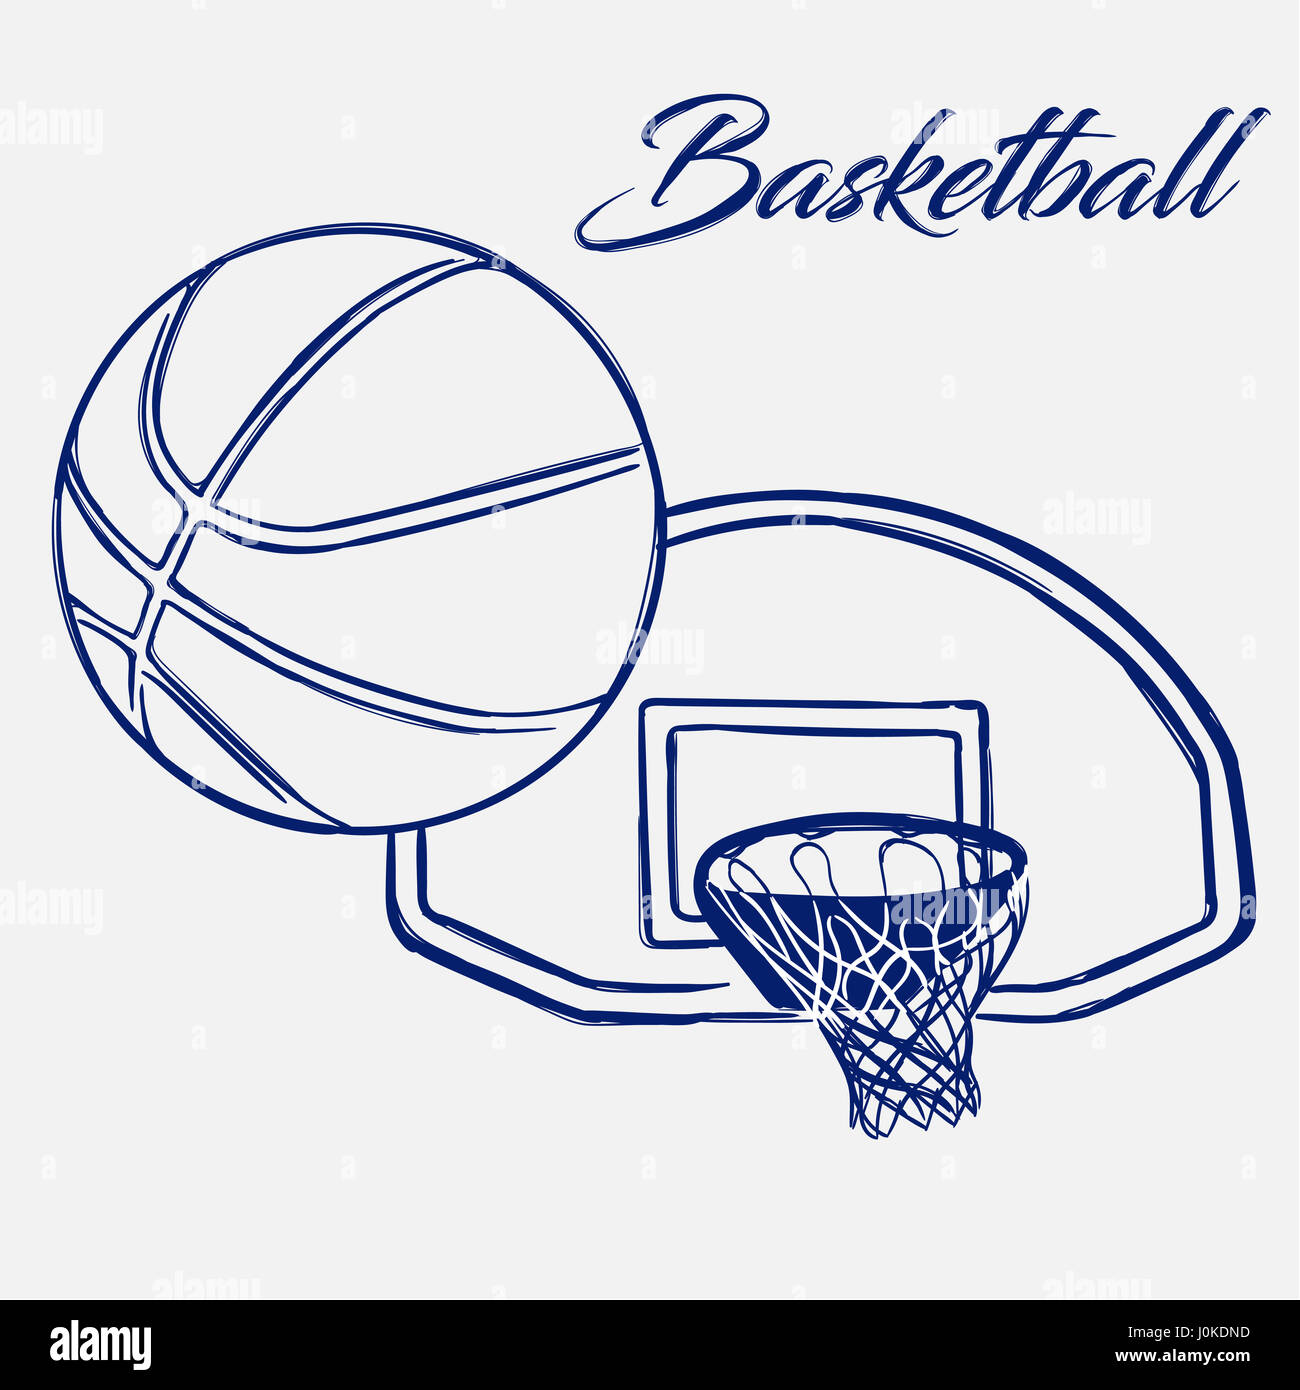 Doodle Hand Drawn Sketch Street Basketball Ball Flies Into Ring Stock Photo Royalty Free Image ...